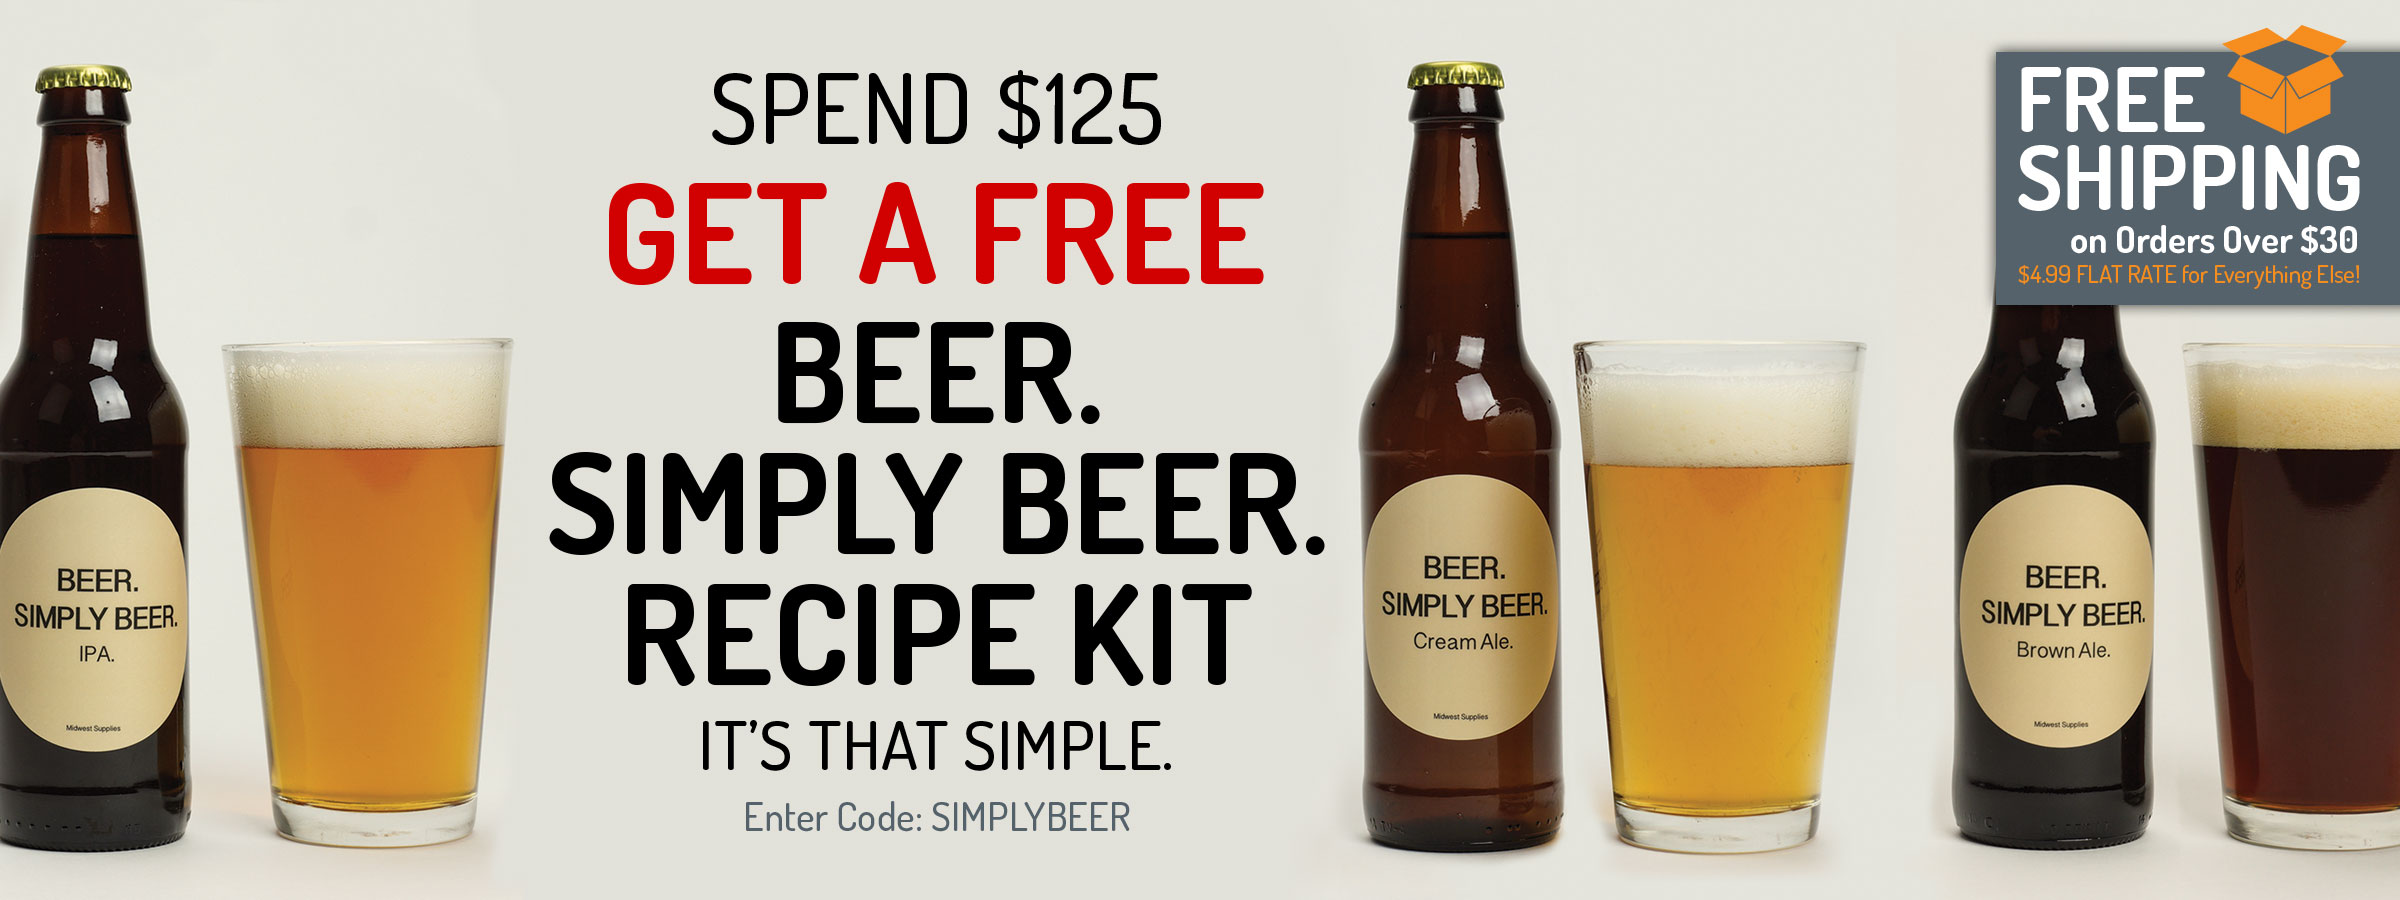 Spend $125, Get a Free Beer. Simply Beer. Recipe Kit